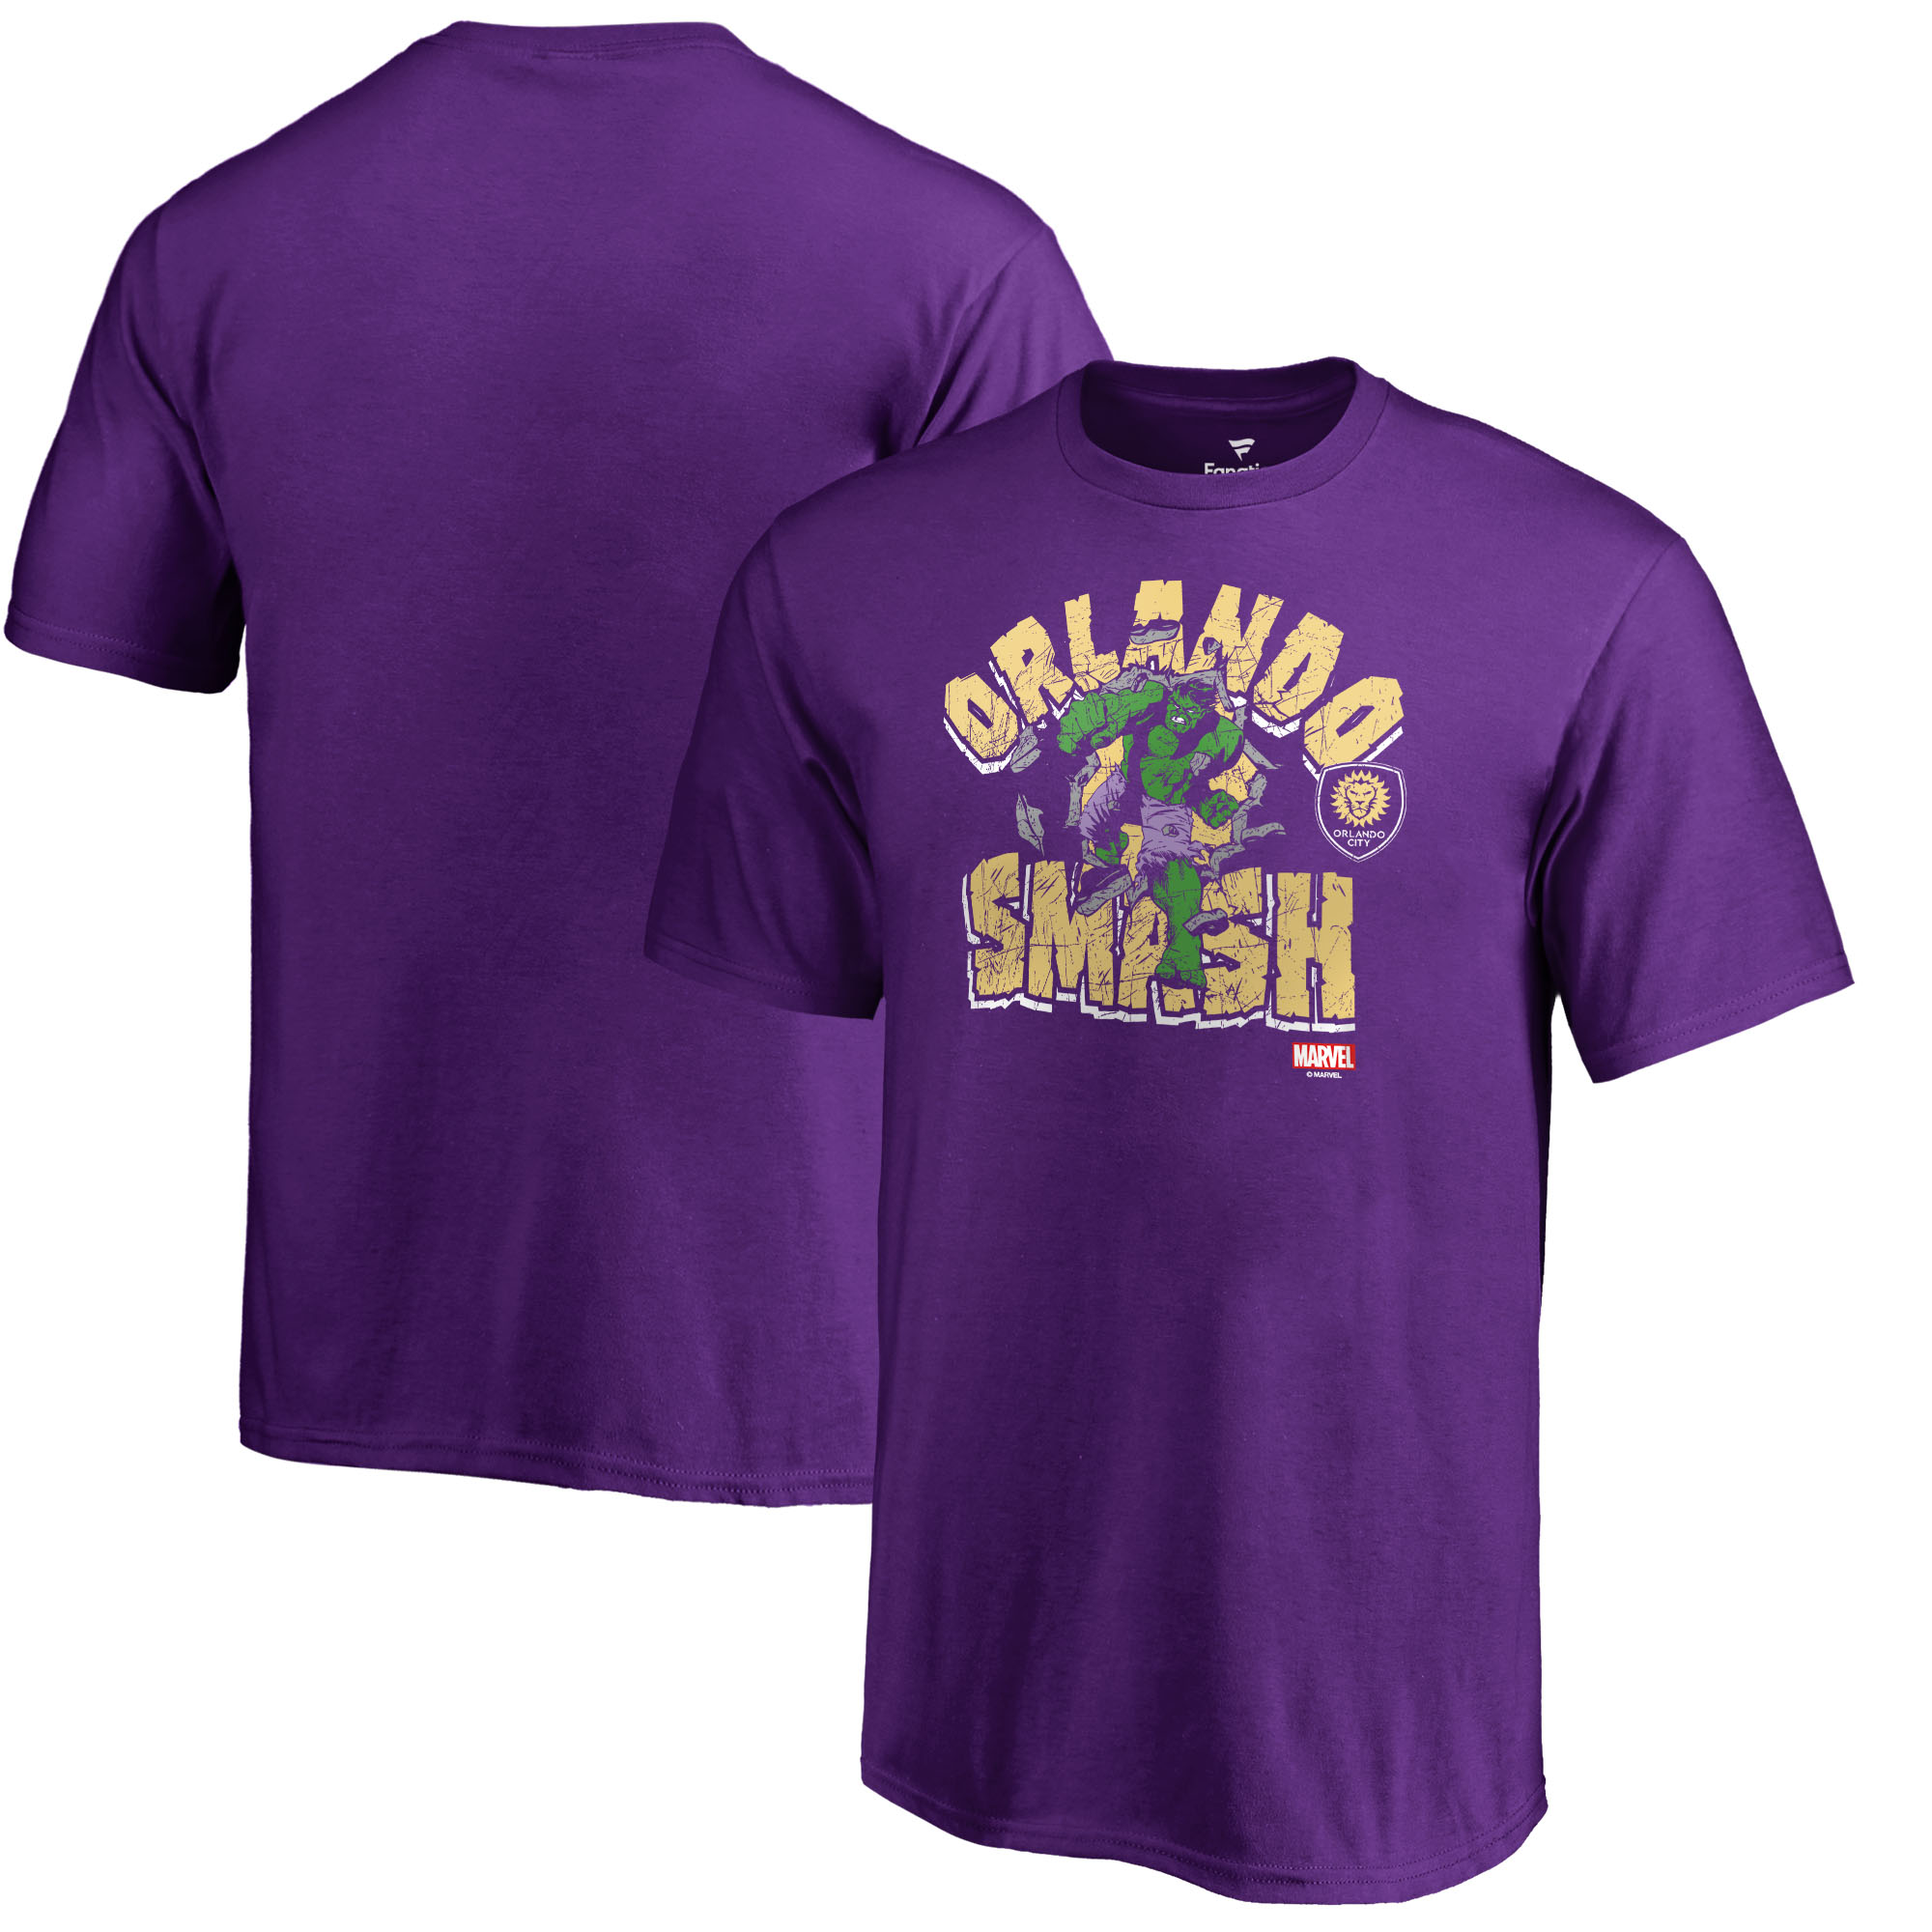 Orlando City SC Fanatics Branded Youth MLS Marvel Hulk Smash T-Shirt - Purple